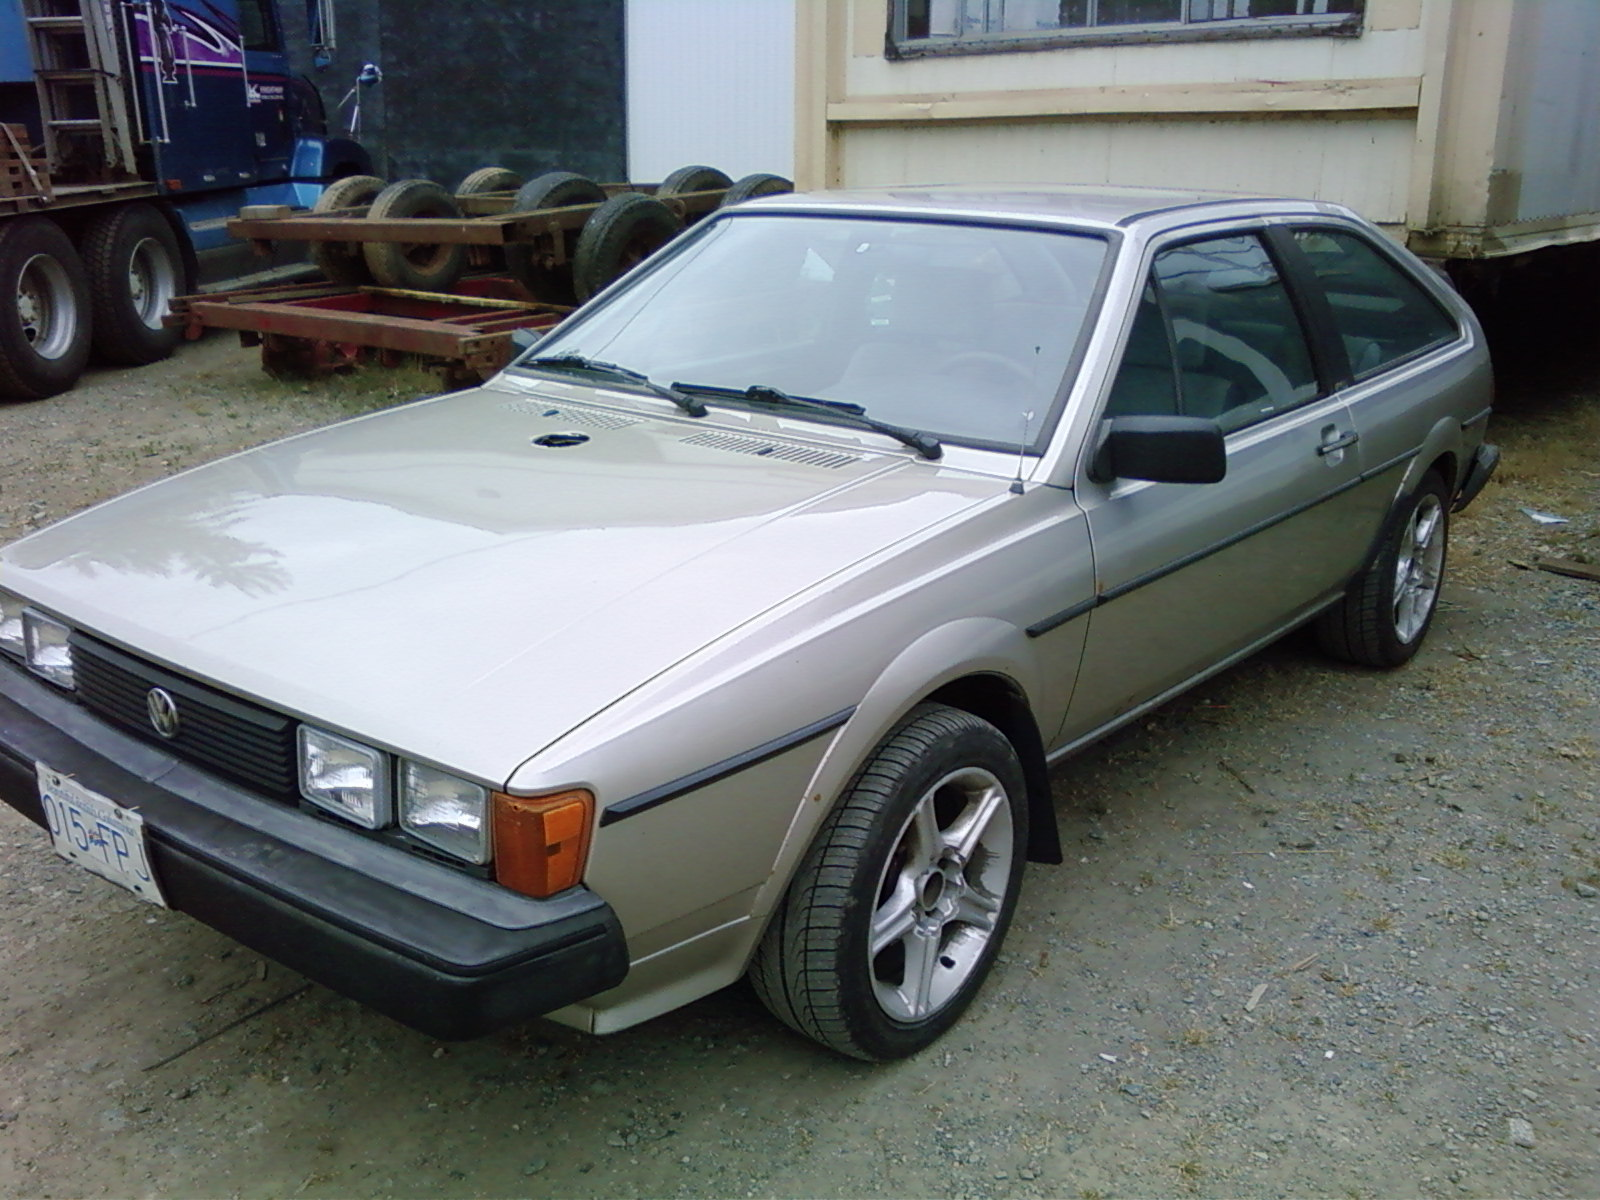 HitMan350 1985 Volkswagen Scirocco Specs, Photos, Modification Info